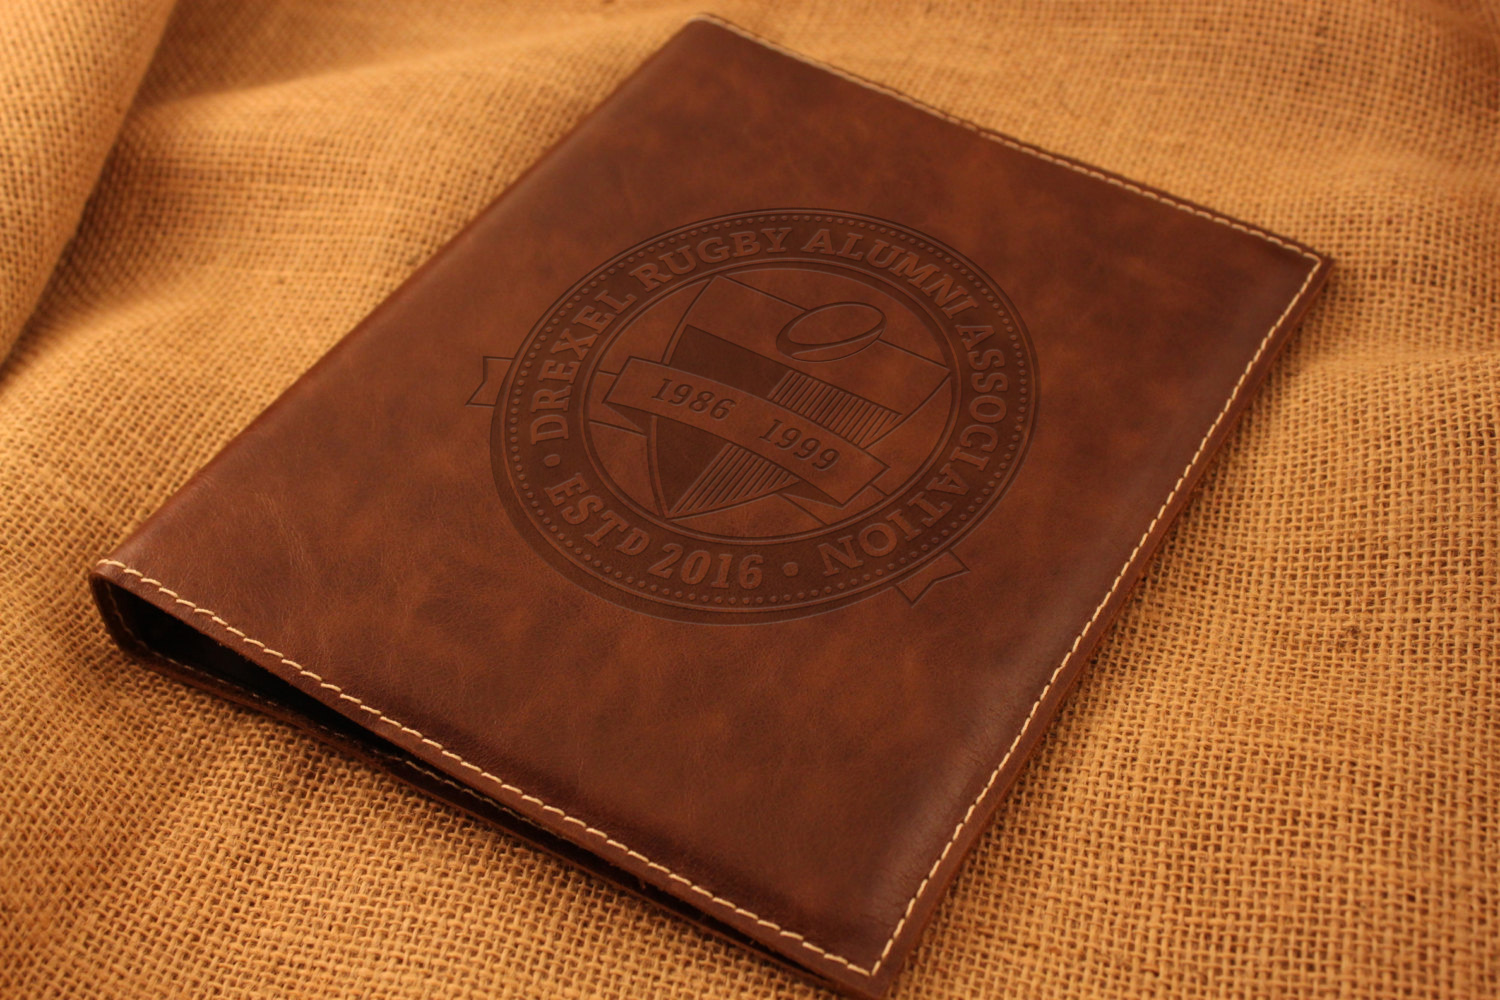 DRAA Full crest on leather folder